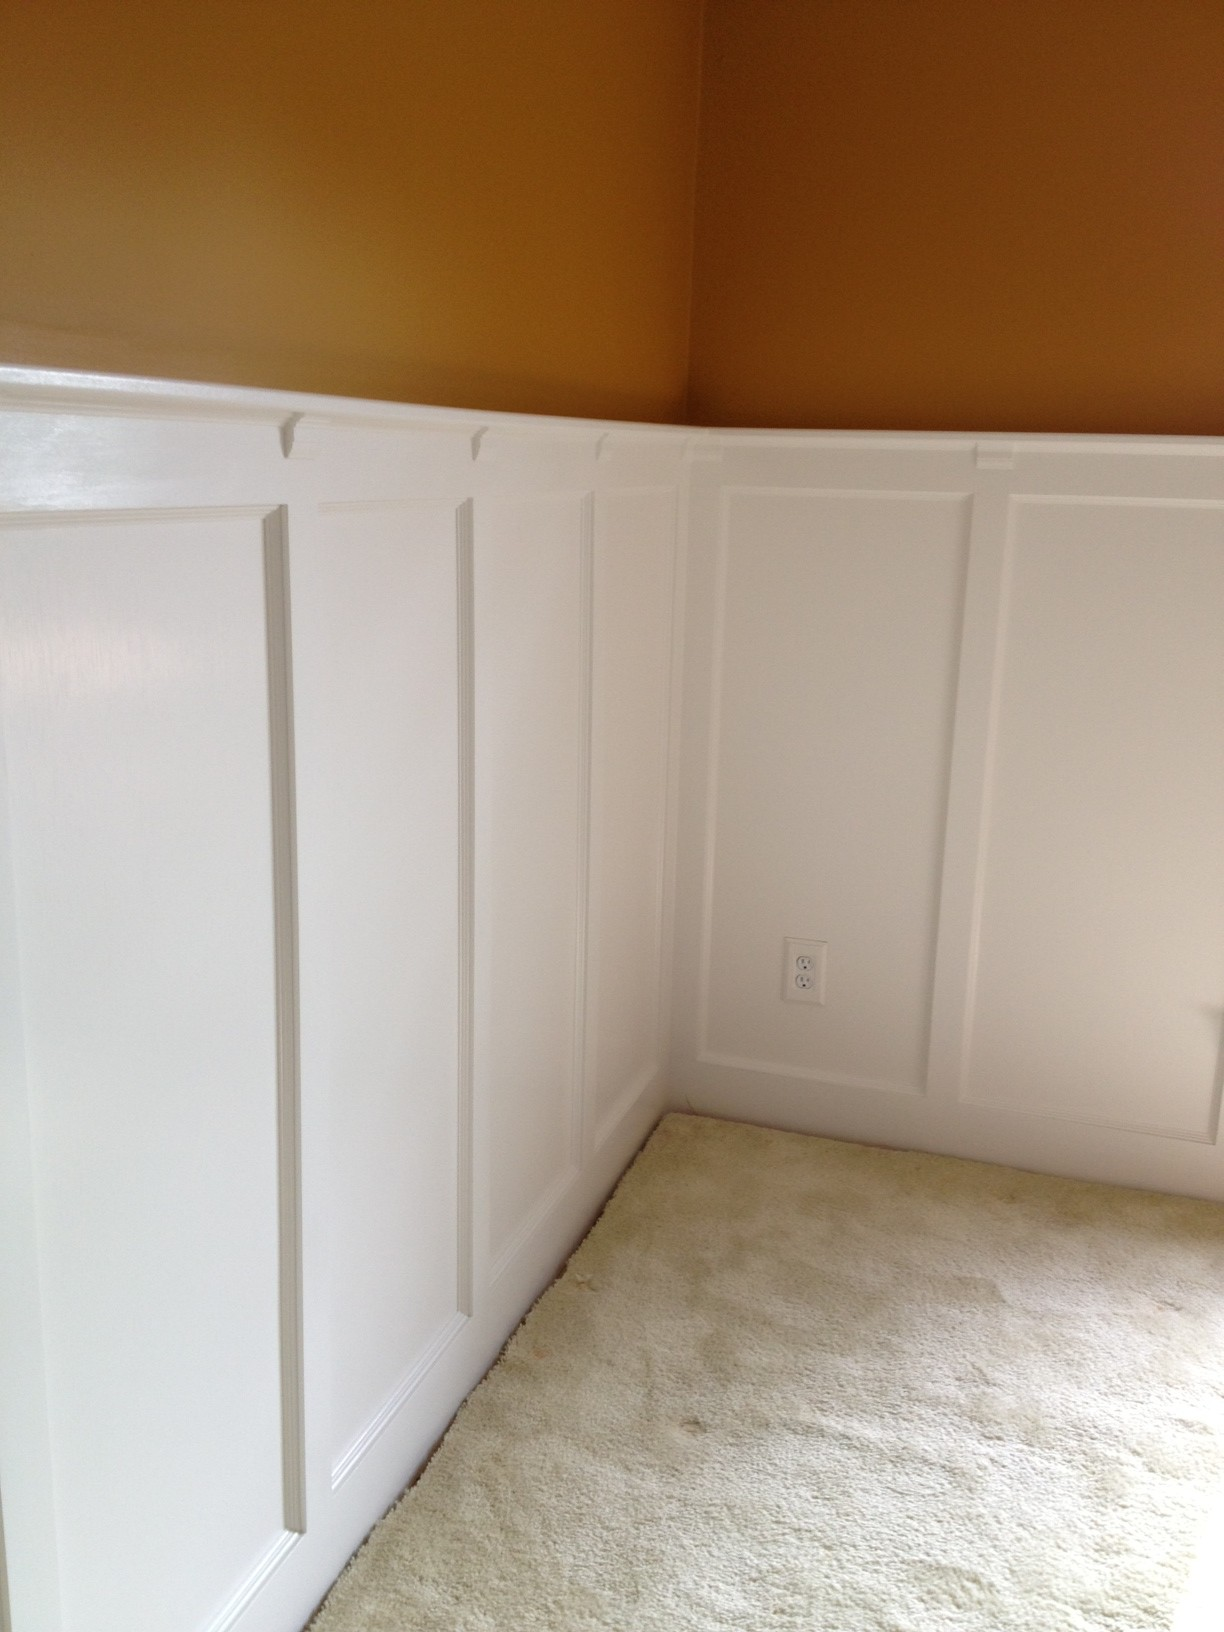 Painted Walls And Wainscot Panels In The Dining Room The